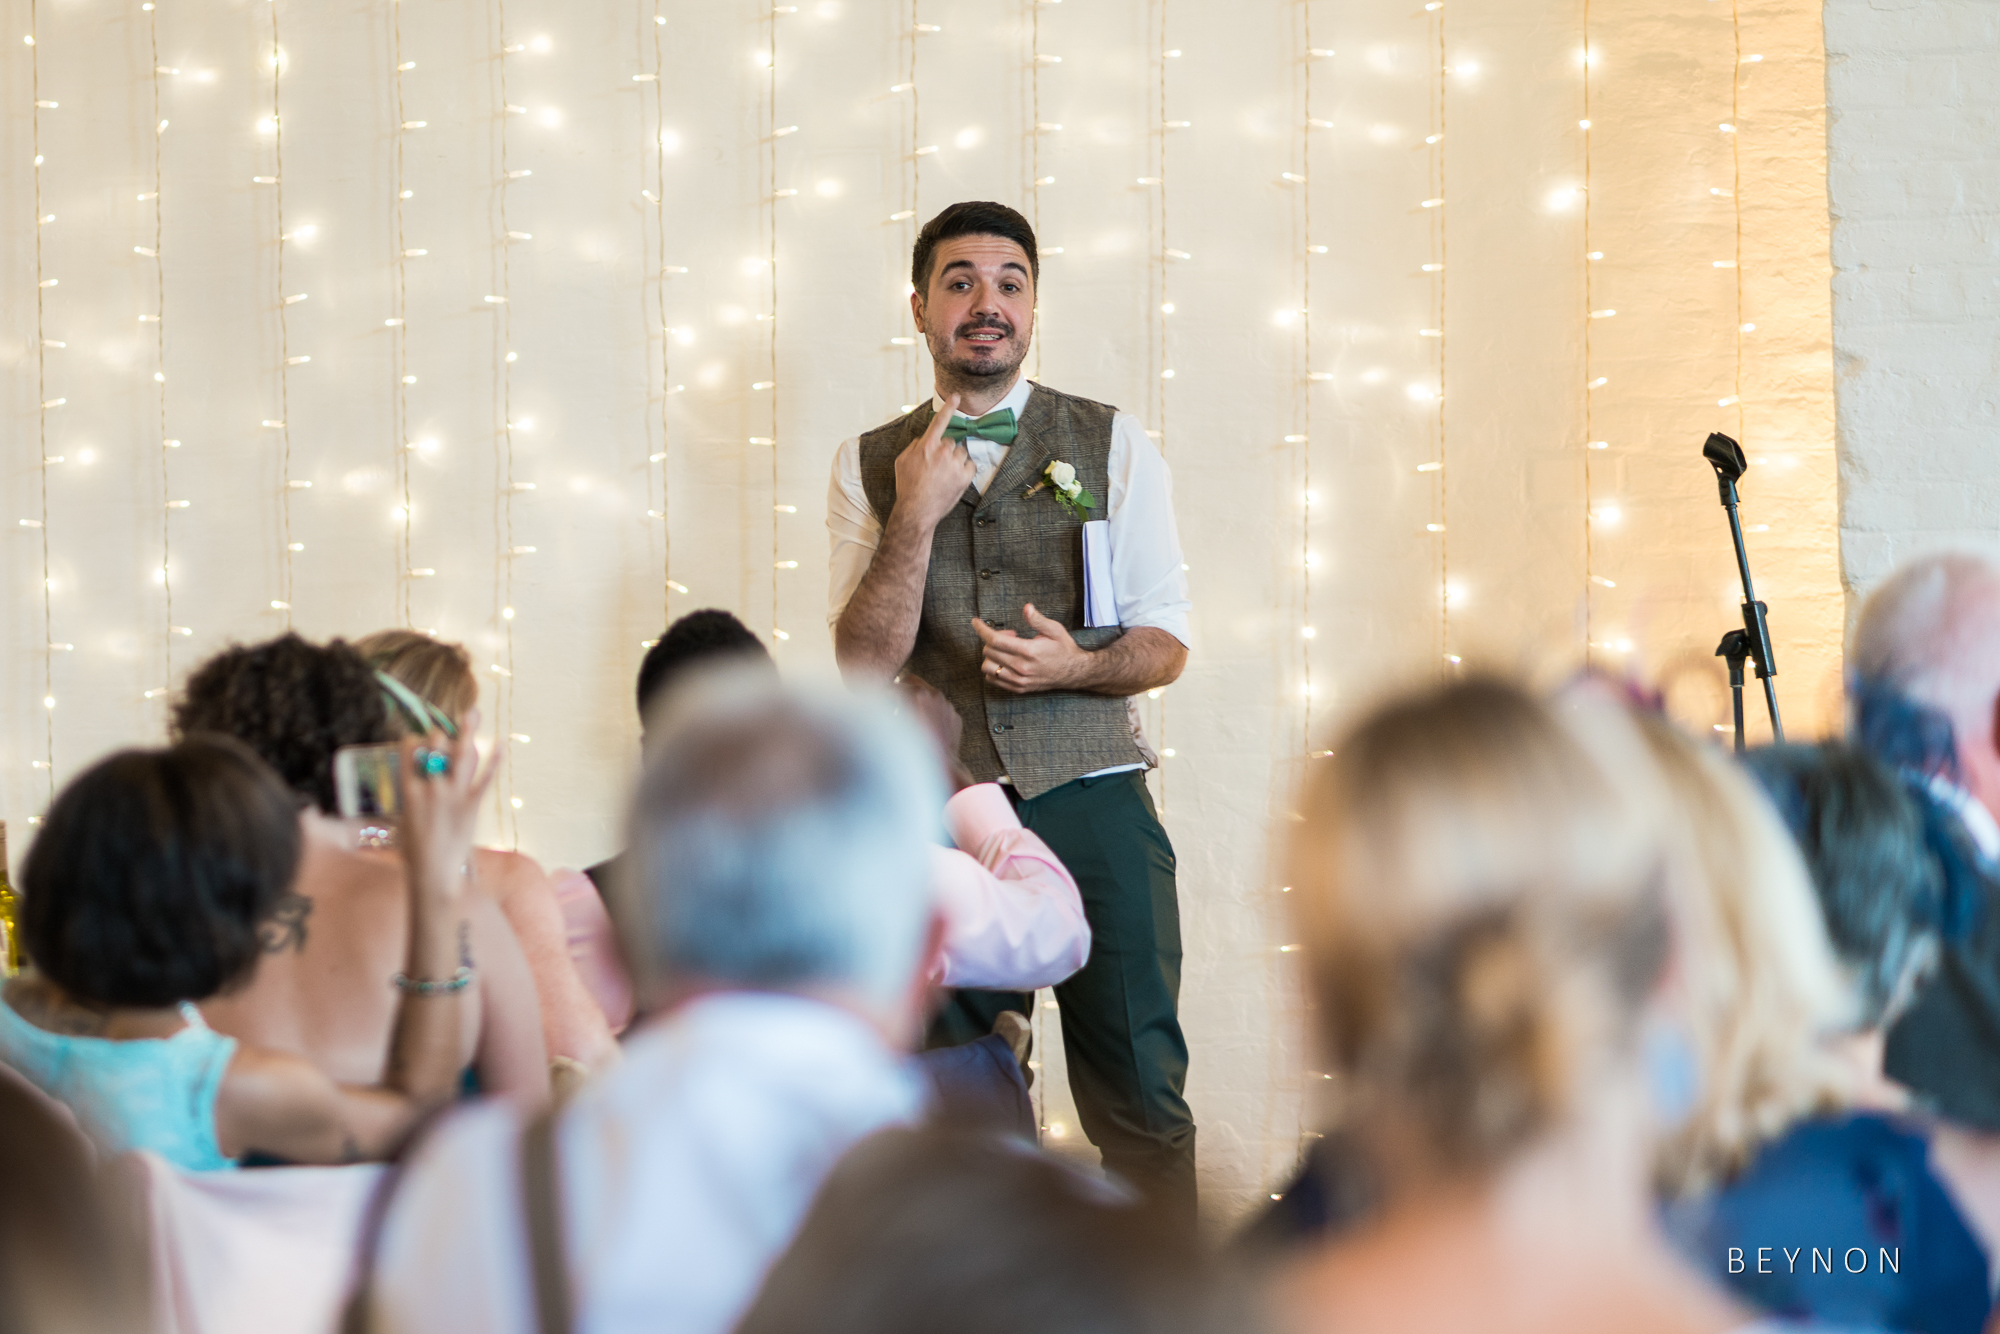 The groom gives his speech in sign language